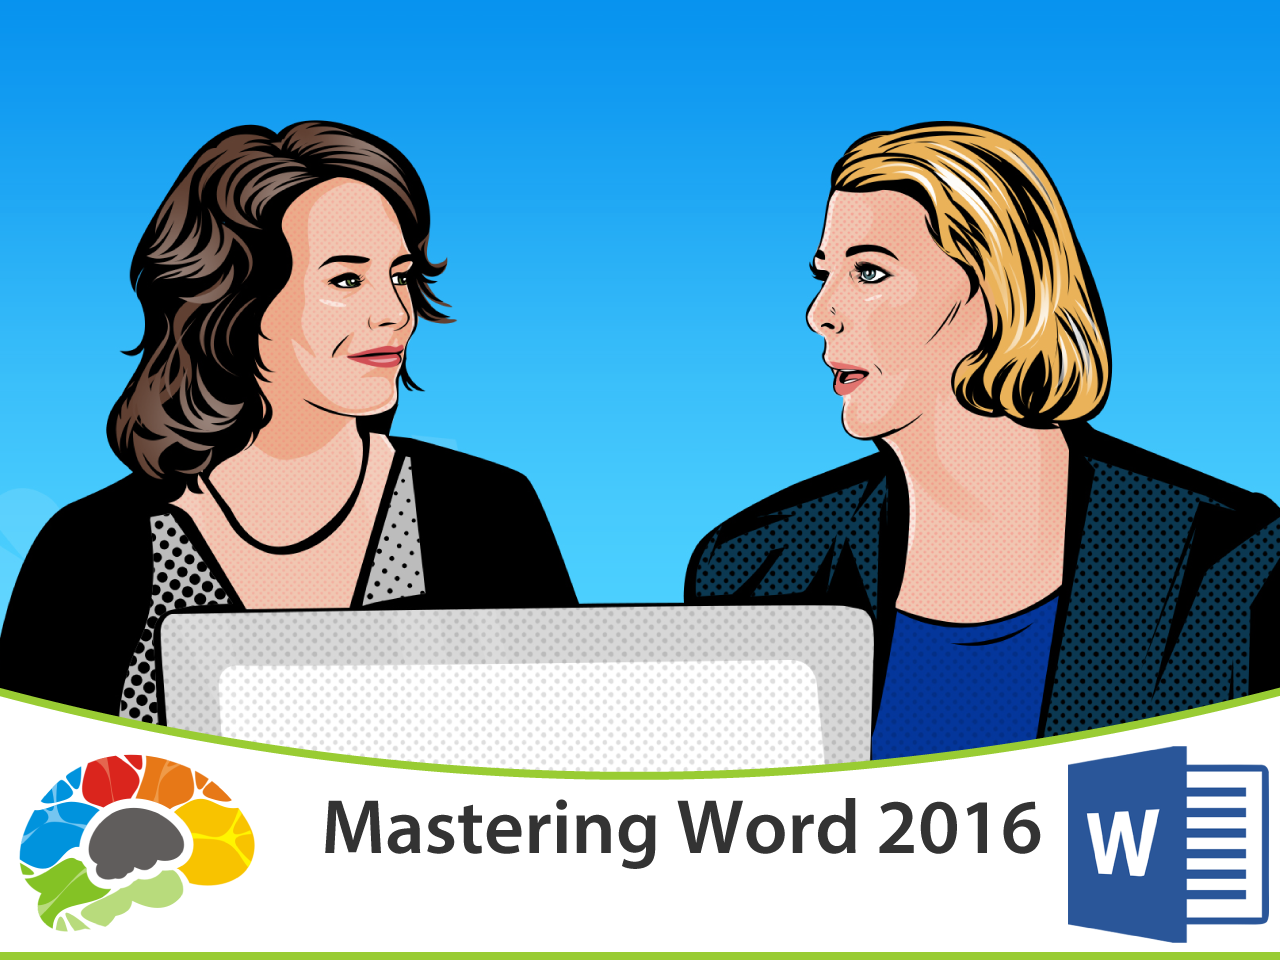 Mastering Word 2016 (full course)